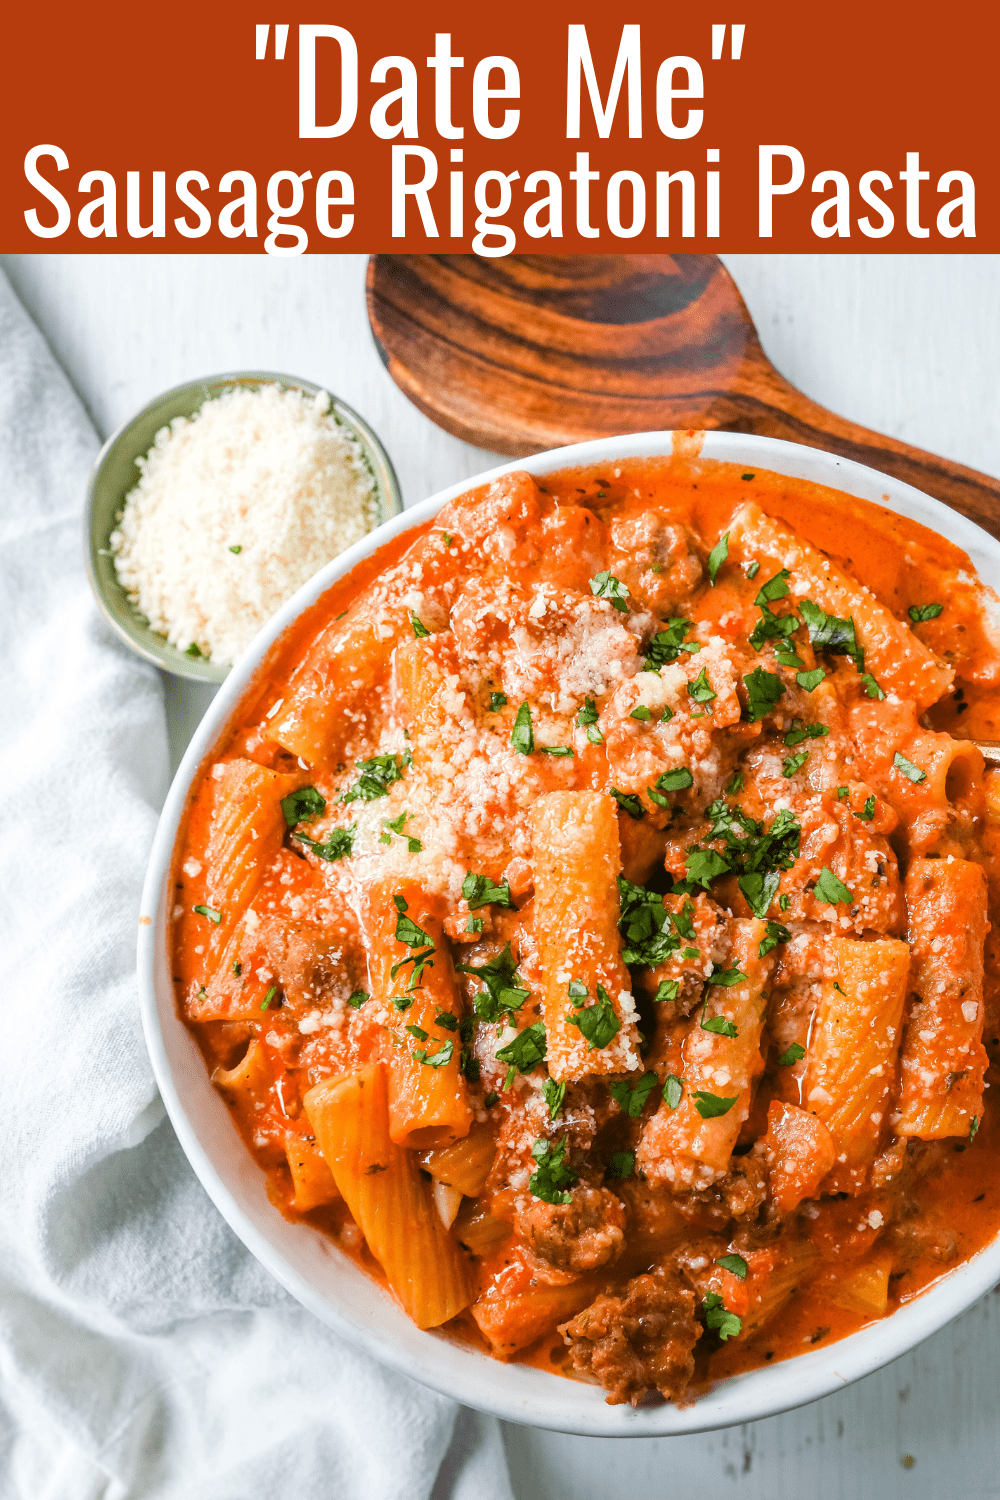 """Date Me"" Creamy Sausage Rigatoni Pasta Homemade rich and creamy tomato cream and sausage sauce tossed with rigatoni and topped with parmesan cheese. The best creamy sausage rigatoni pasta! #pasta #dinner"